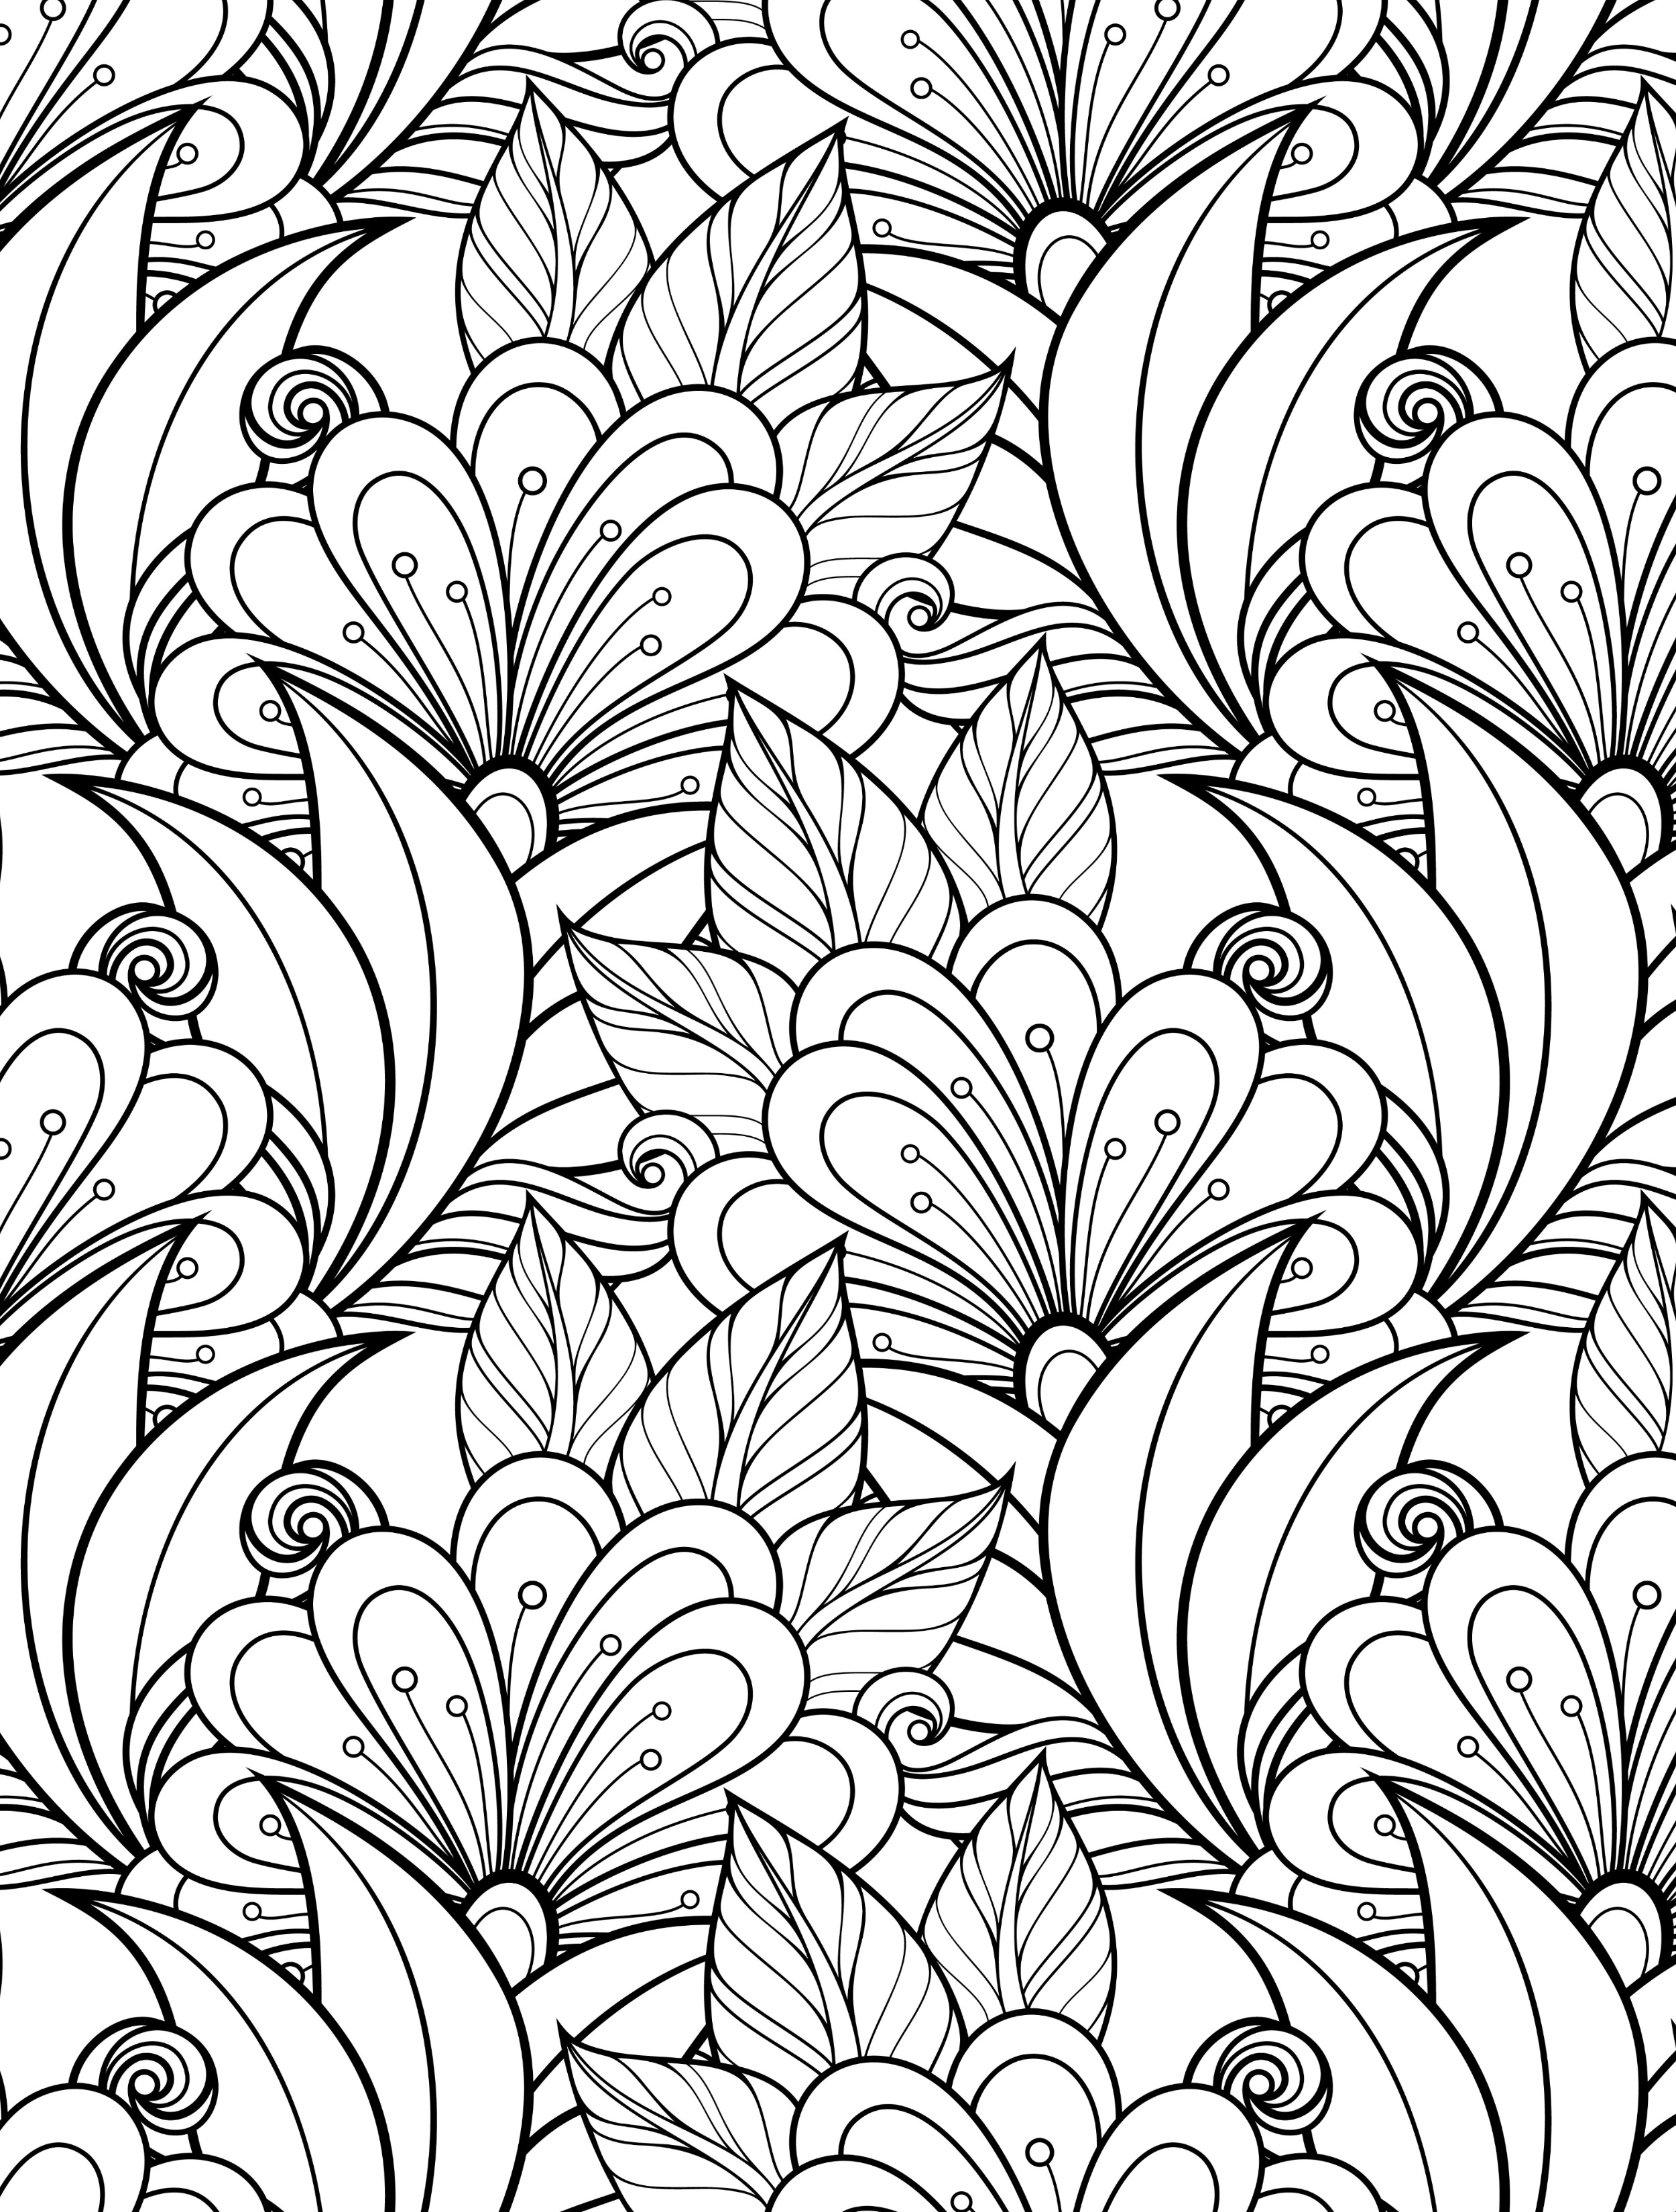 coloring pages online for adults detailed coloring pages for adults coloring home adults for online coloring pages